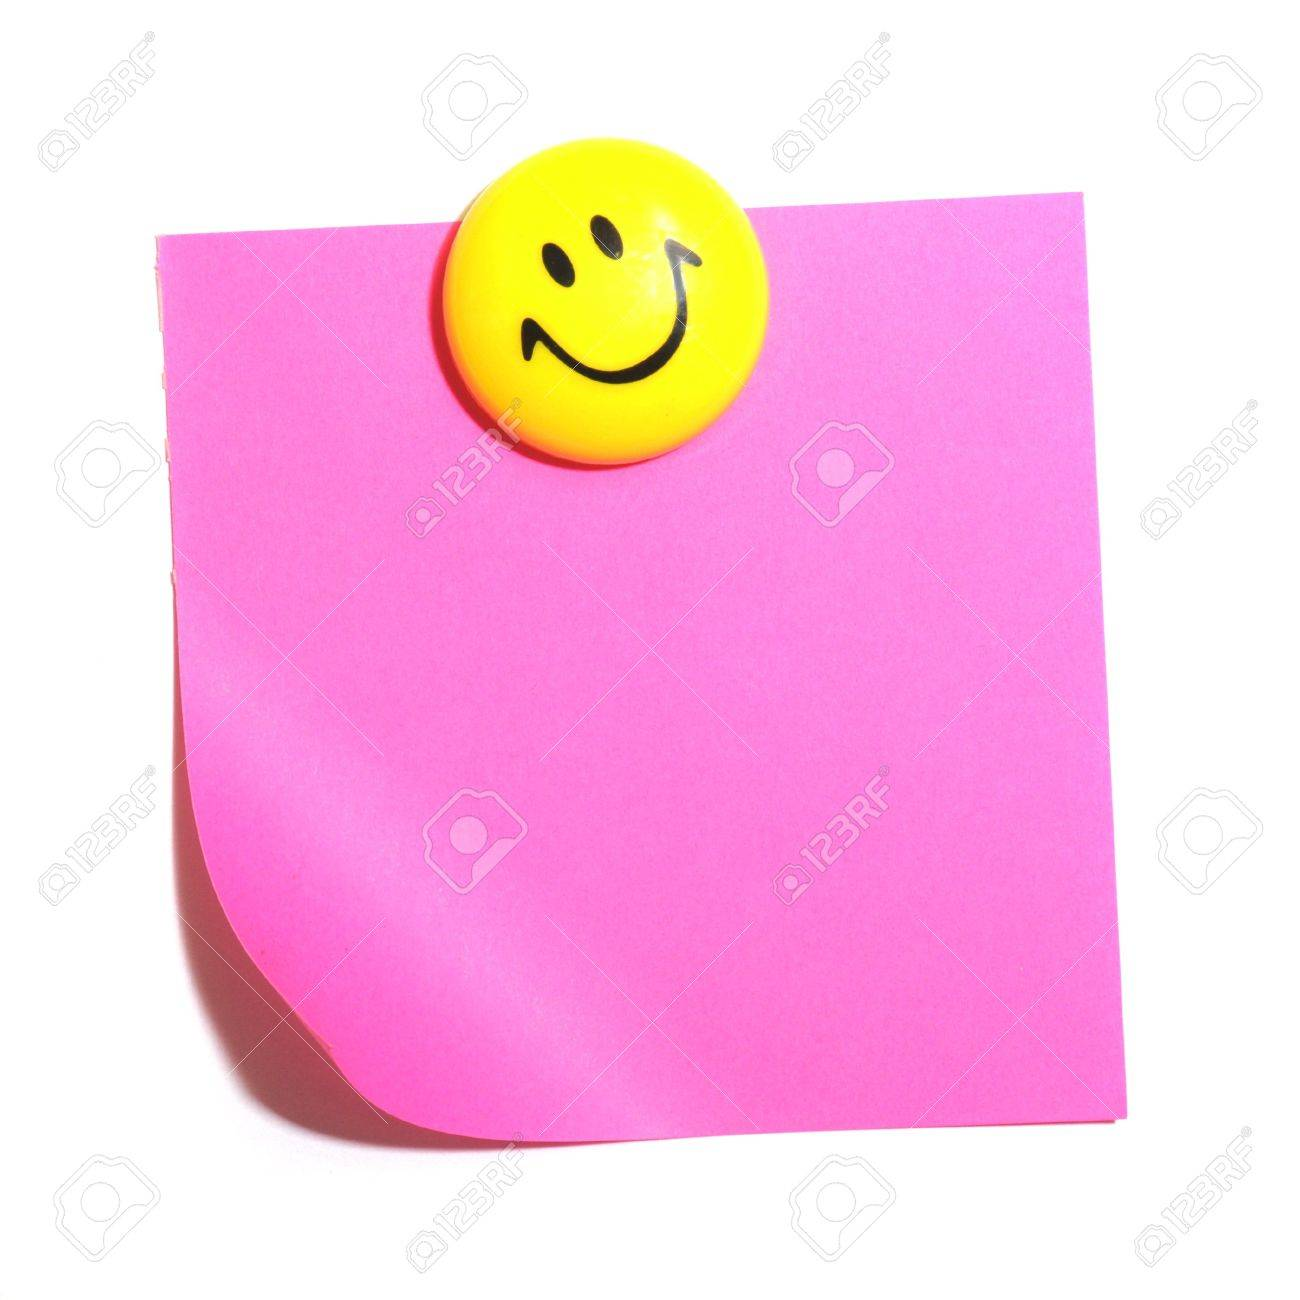 Smiley face and blank paper with copyspace for your text message smiley face and blank paper with copyspace for your text message stock photo 7055566 biocorpaavc